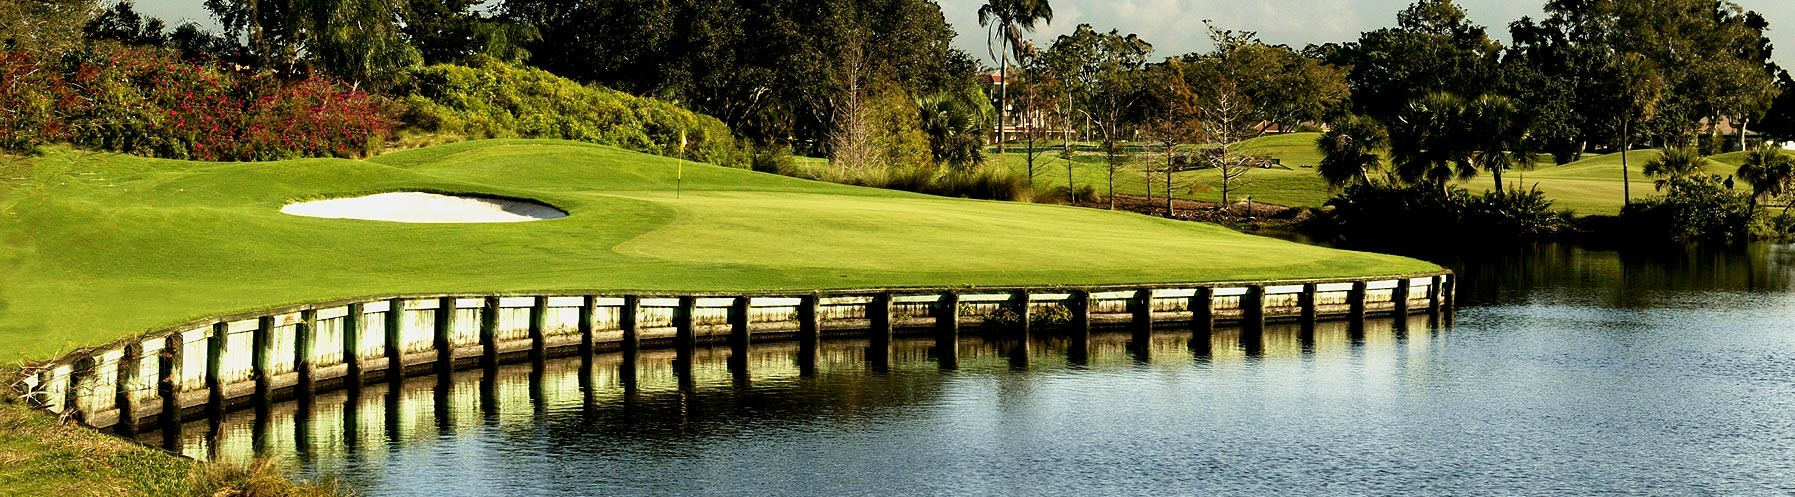 Our signature hole floridas best golf hole